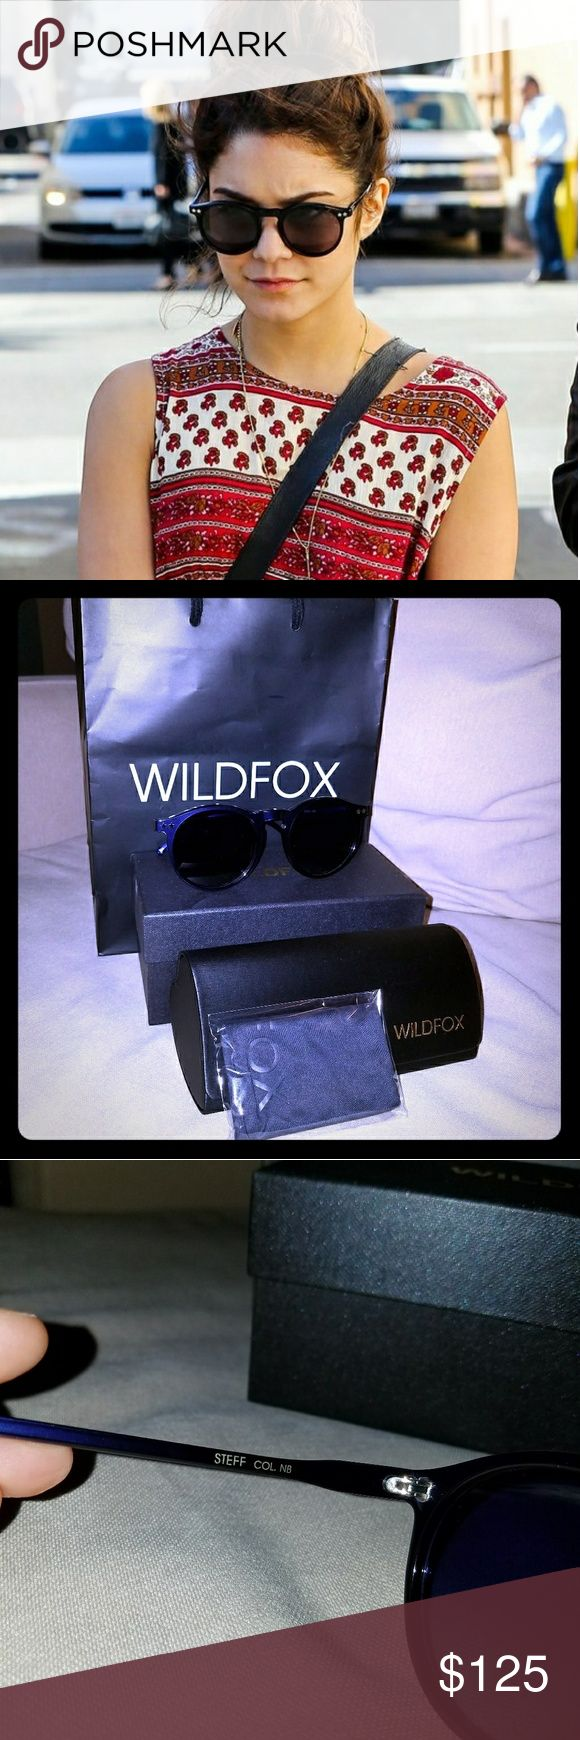 New! Wildfox Navy Blue Steff Sunglasses The Steff is the girly and glam Wildfox version of the traditional panto: a circular frame with a high hinge. Delicate star detailing. Handmade with Italian acetate. CR39 optical grade lenses offering UV A and B protection. 3 barrel French comotec hinge. Case, cleaning cloth, box and bag included.   Eye width: 50mm  Bridge Width: 14mm  Temple length: 135mm  Wildfox Accessories Sunglasses